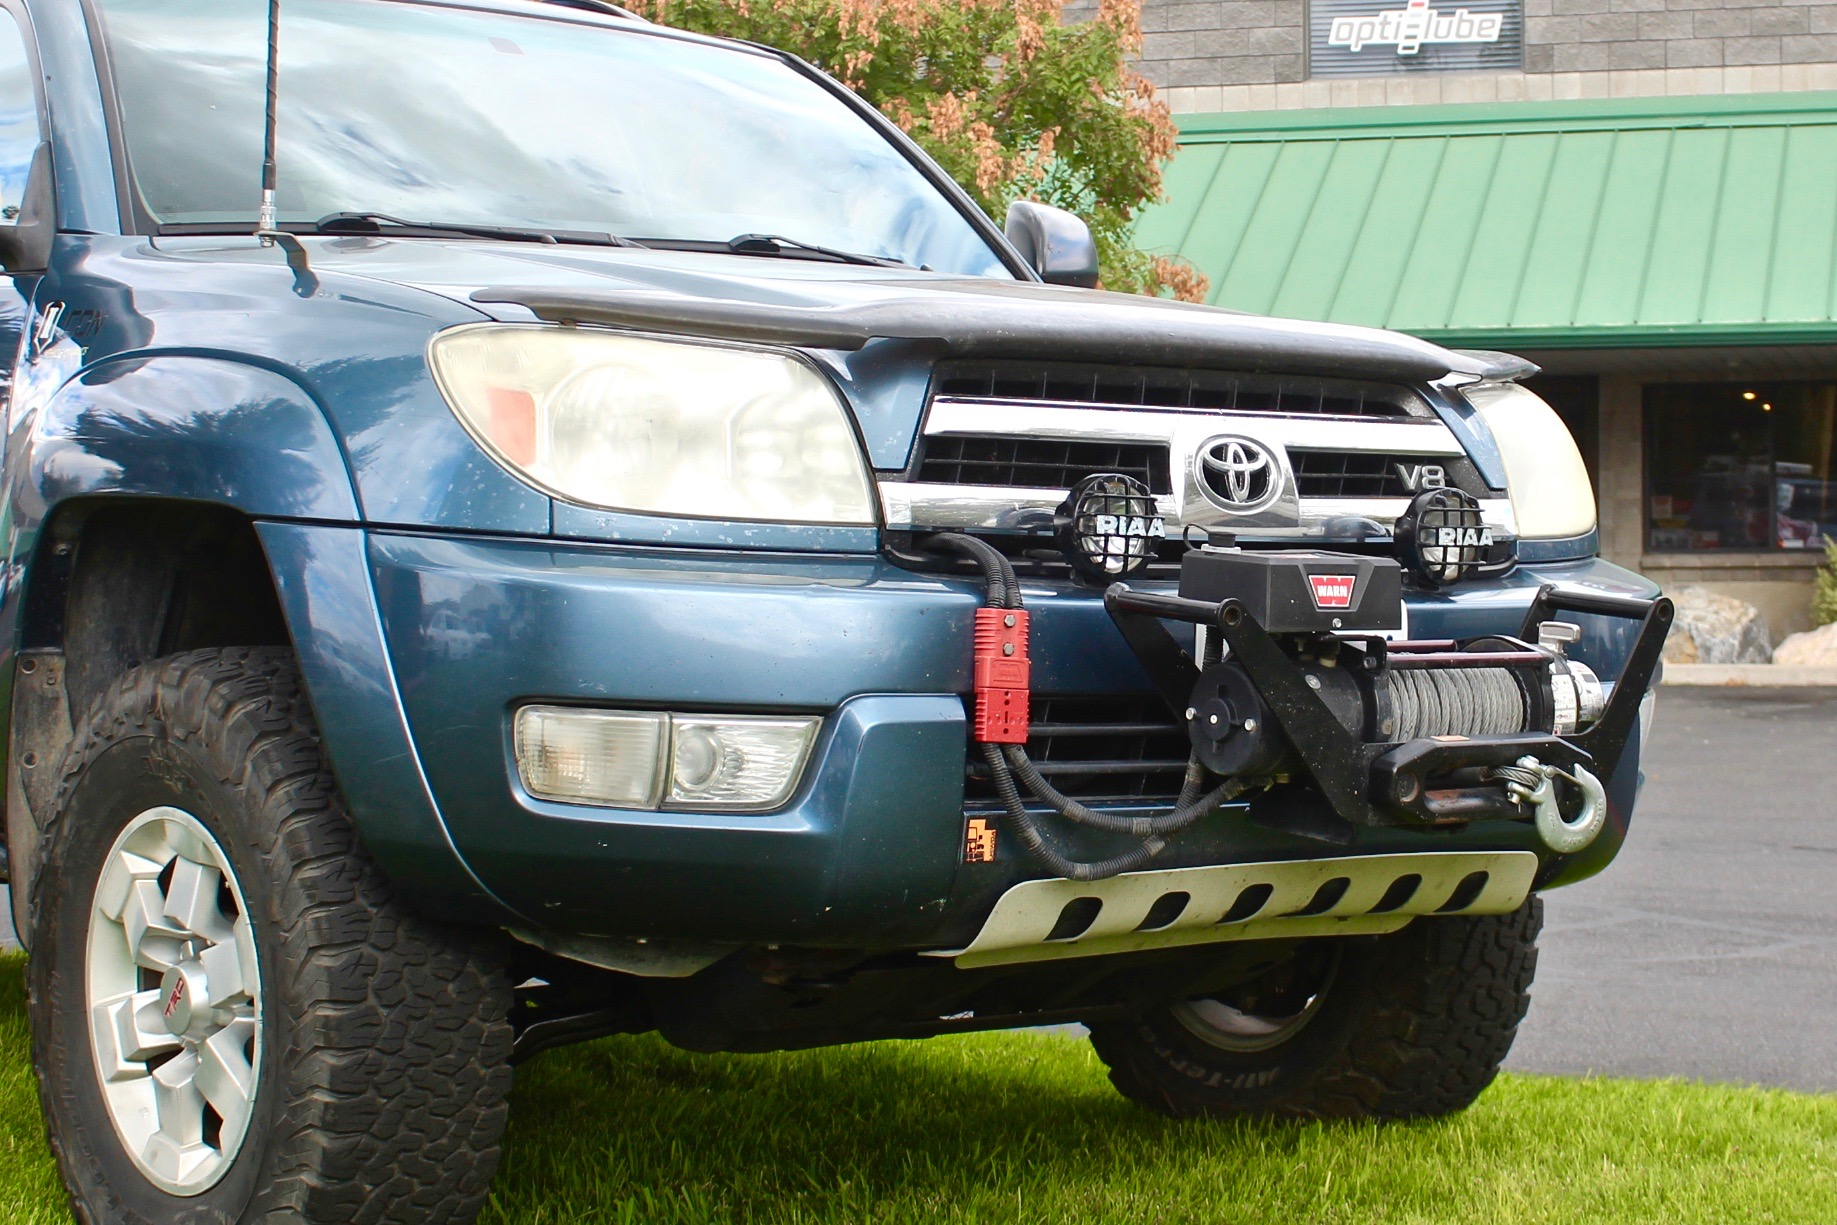 Shane Coles' 2005 Toyota 4Runner with a CBI Receiver and a Warn M8000 winch.